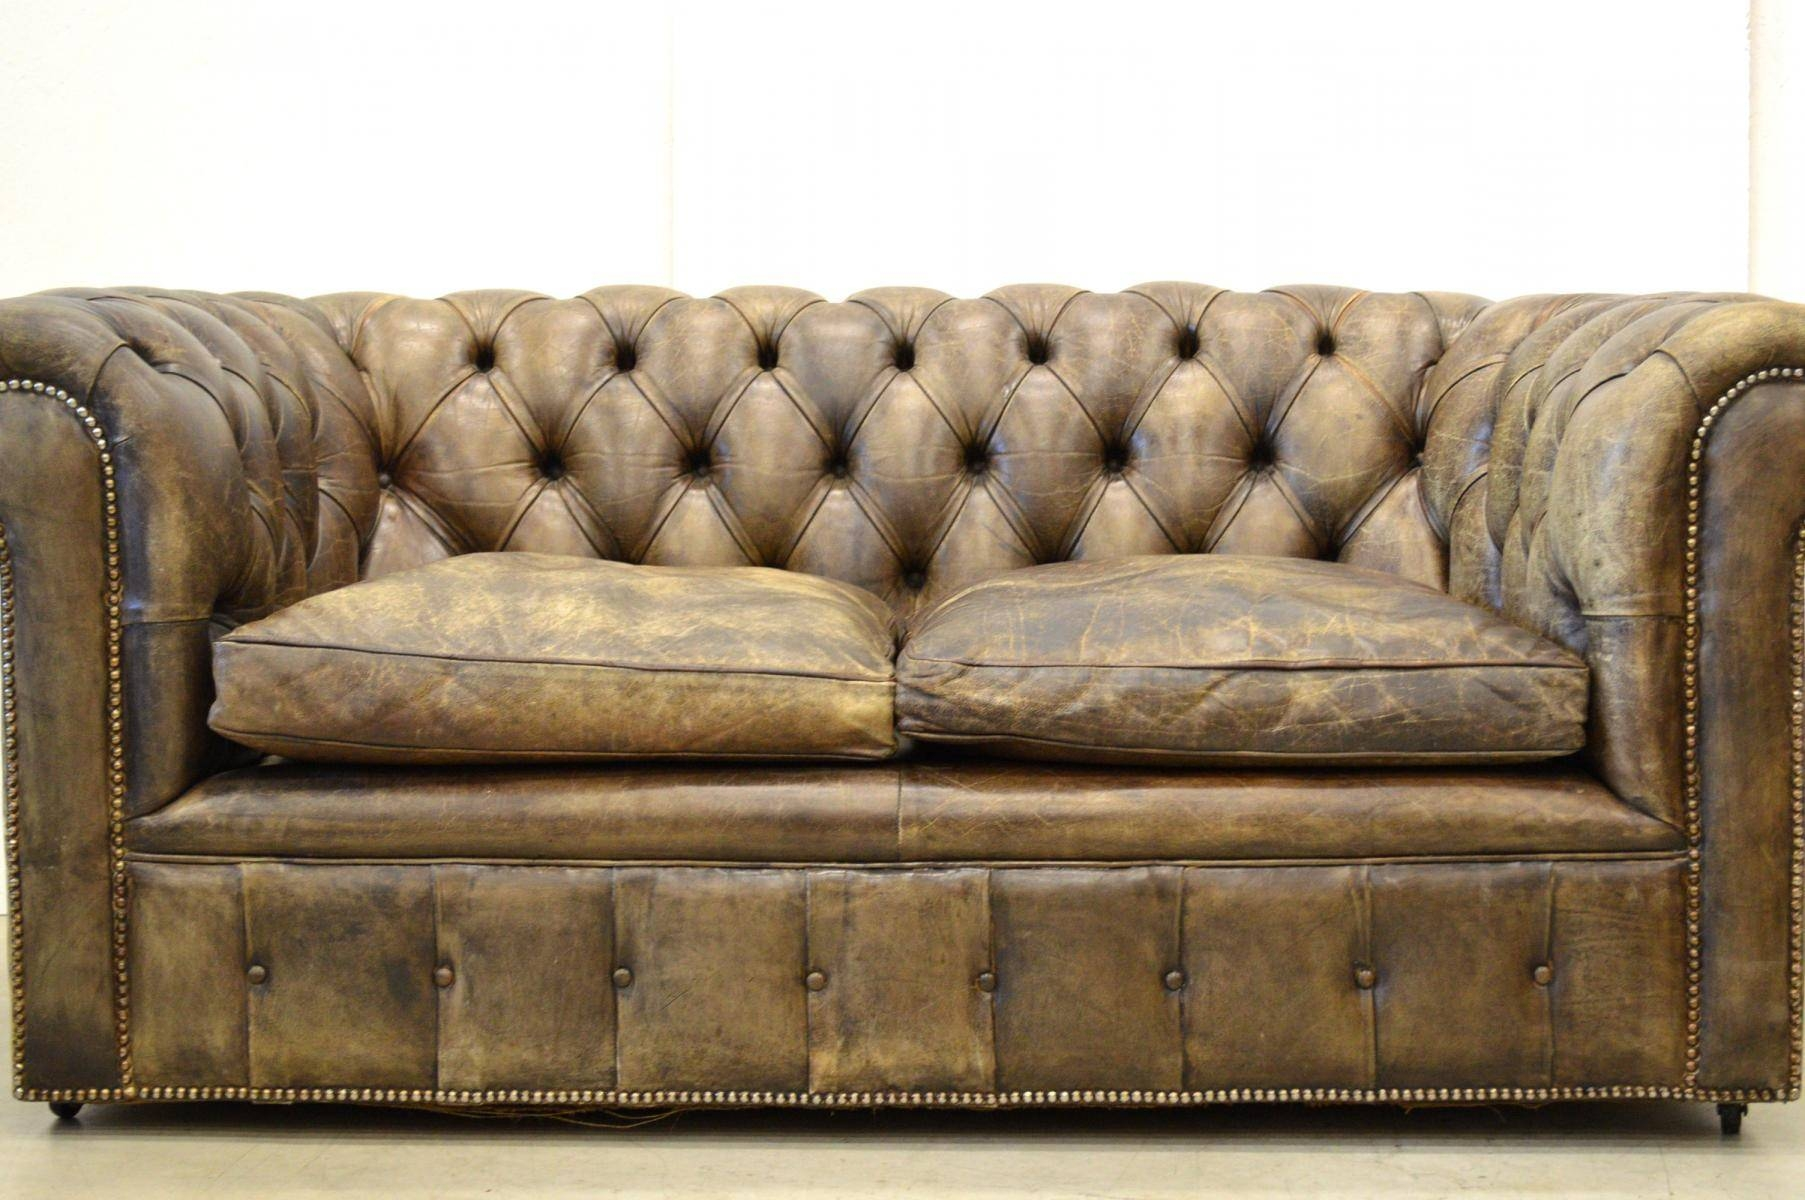 Vintage English Dark Brown Leather Chesterfield Two-Seater Sofa with Vintage Chesterfield Sofas (Image 24 of 30)